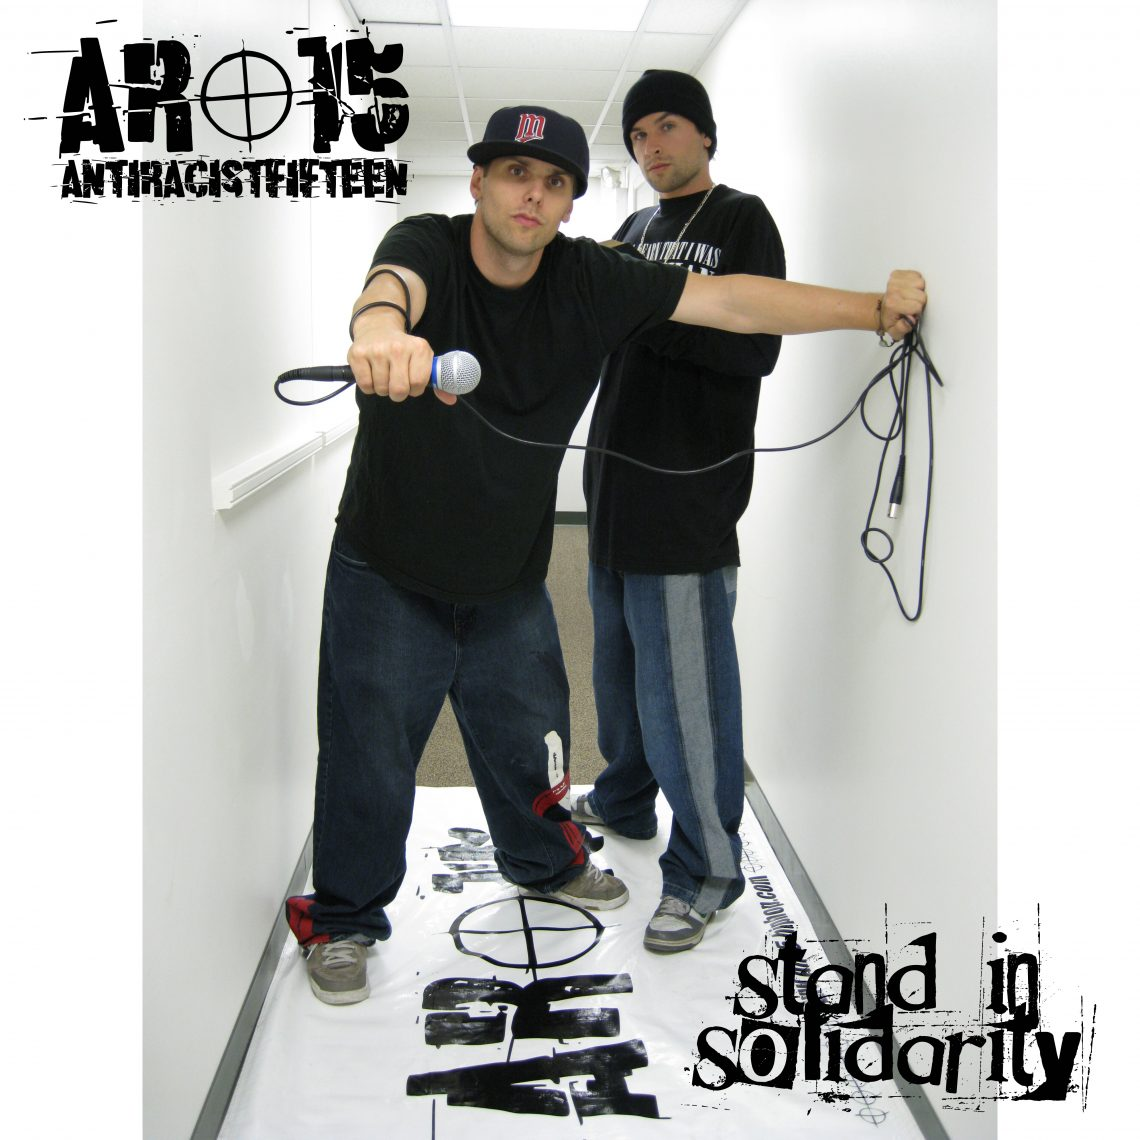 cropped-ar-15_stand_in_solidarity_album_cover_art_2-111.jpg